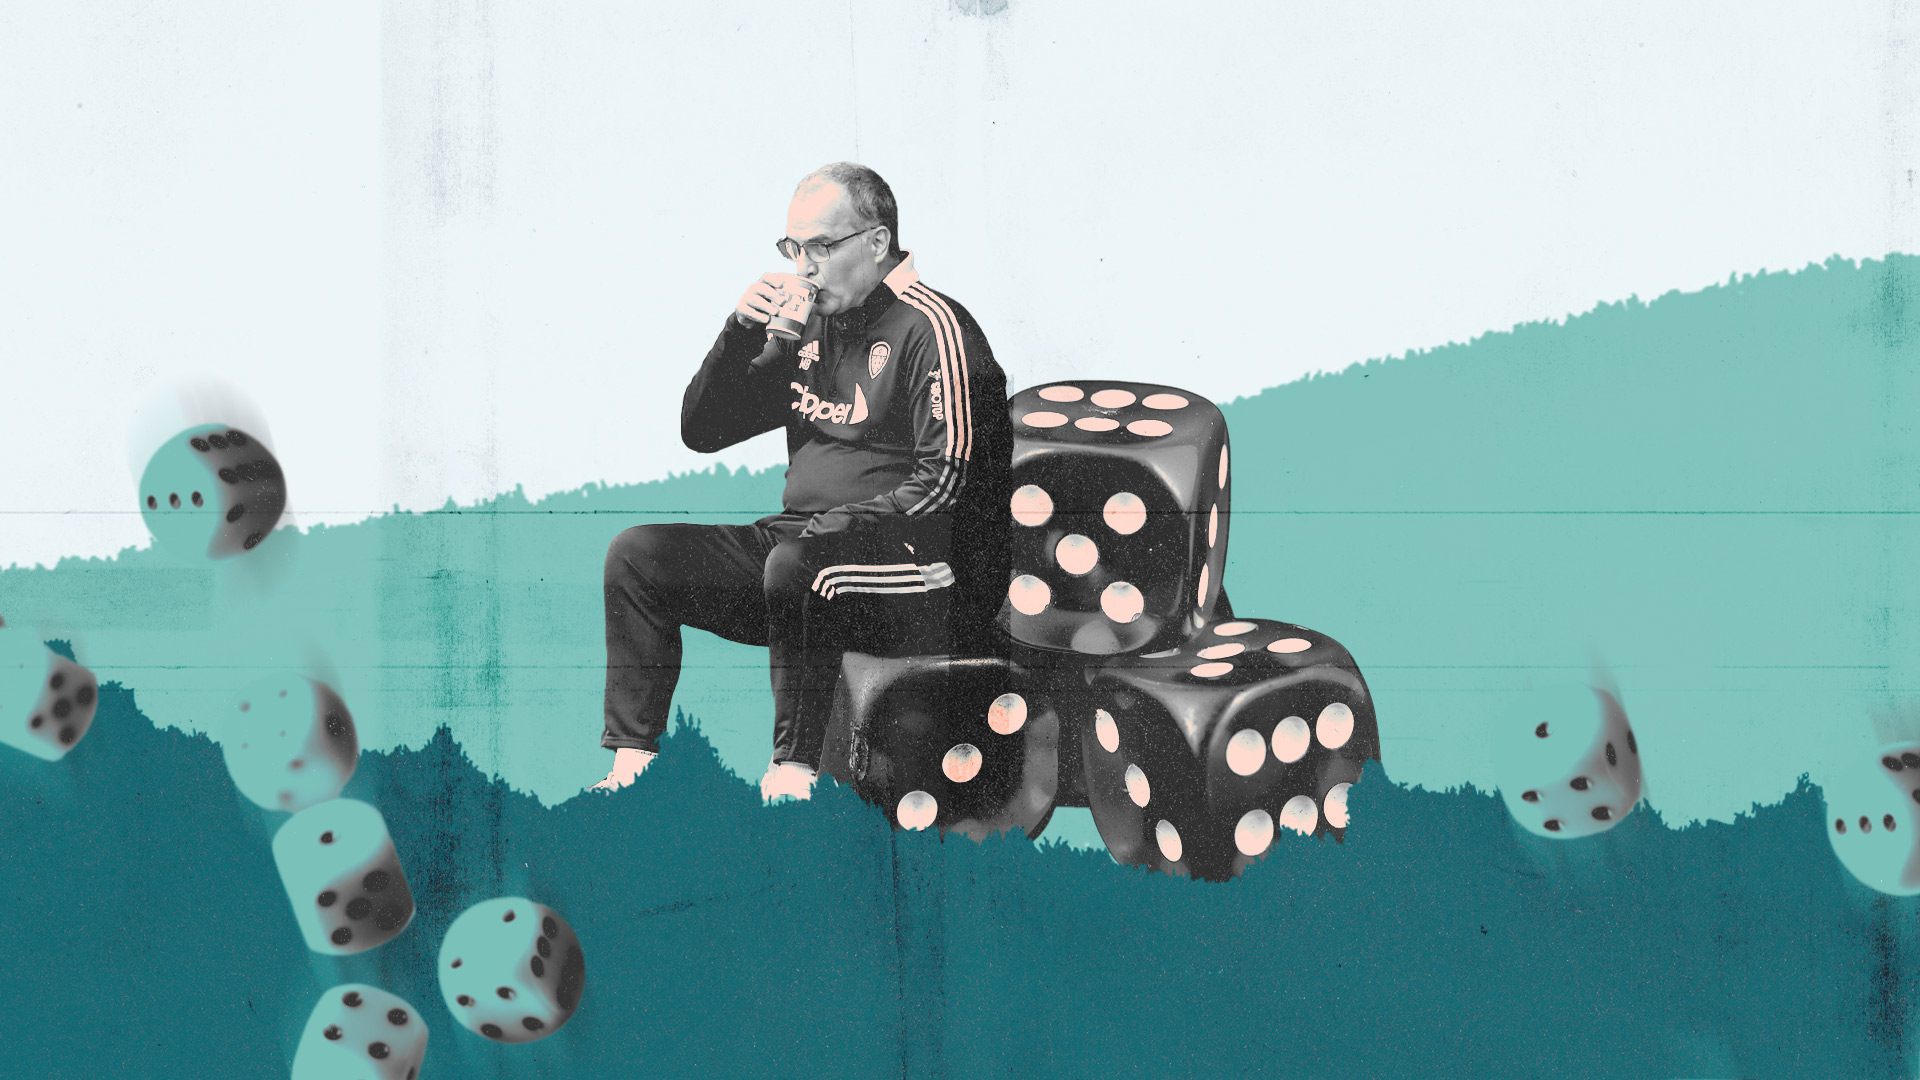 Marcelo Bielsa is sitting down and sipping coffee, only he's sitting on some massive dice (die?) instead of his bucket